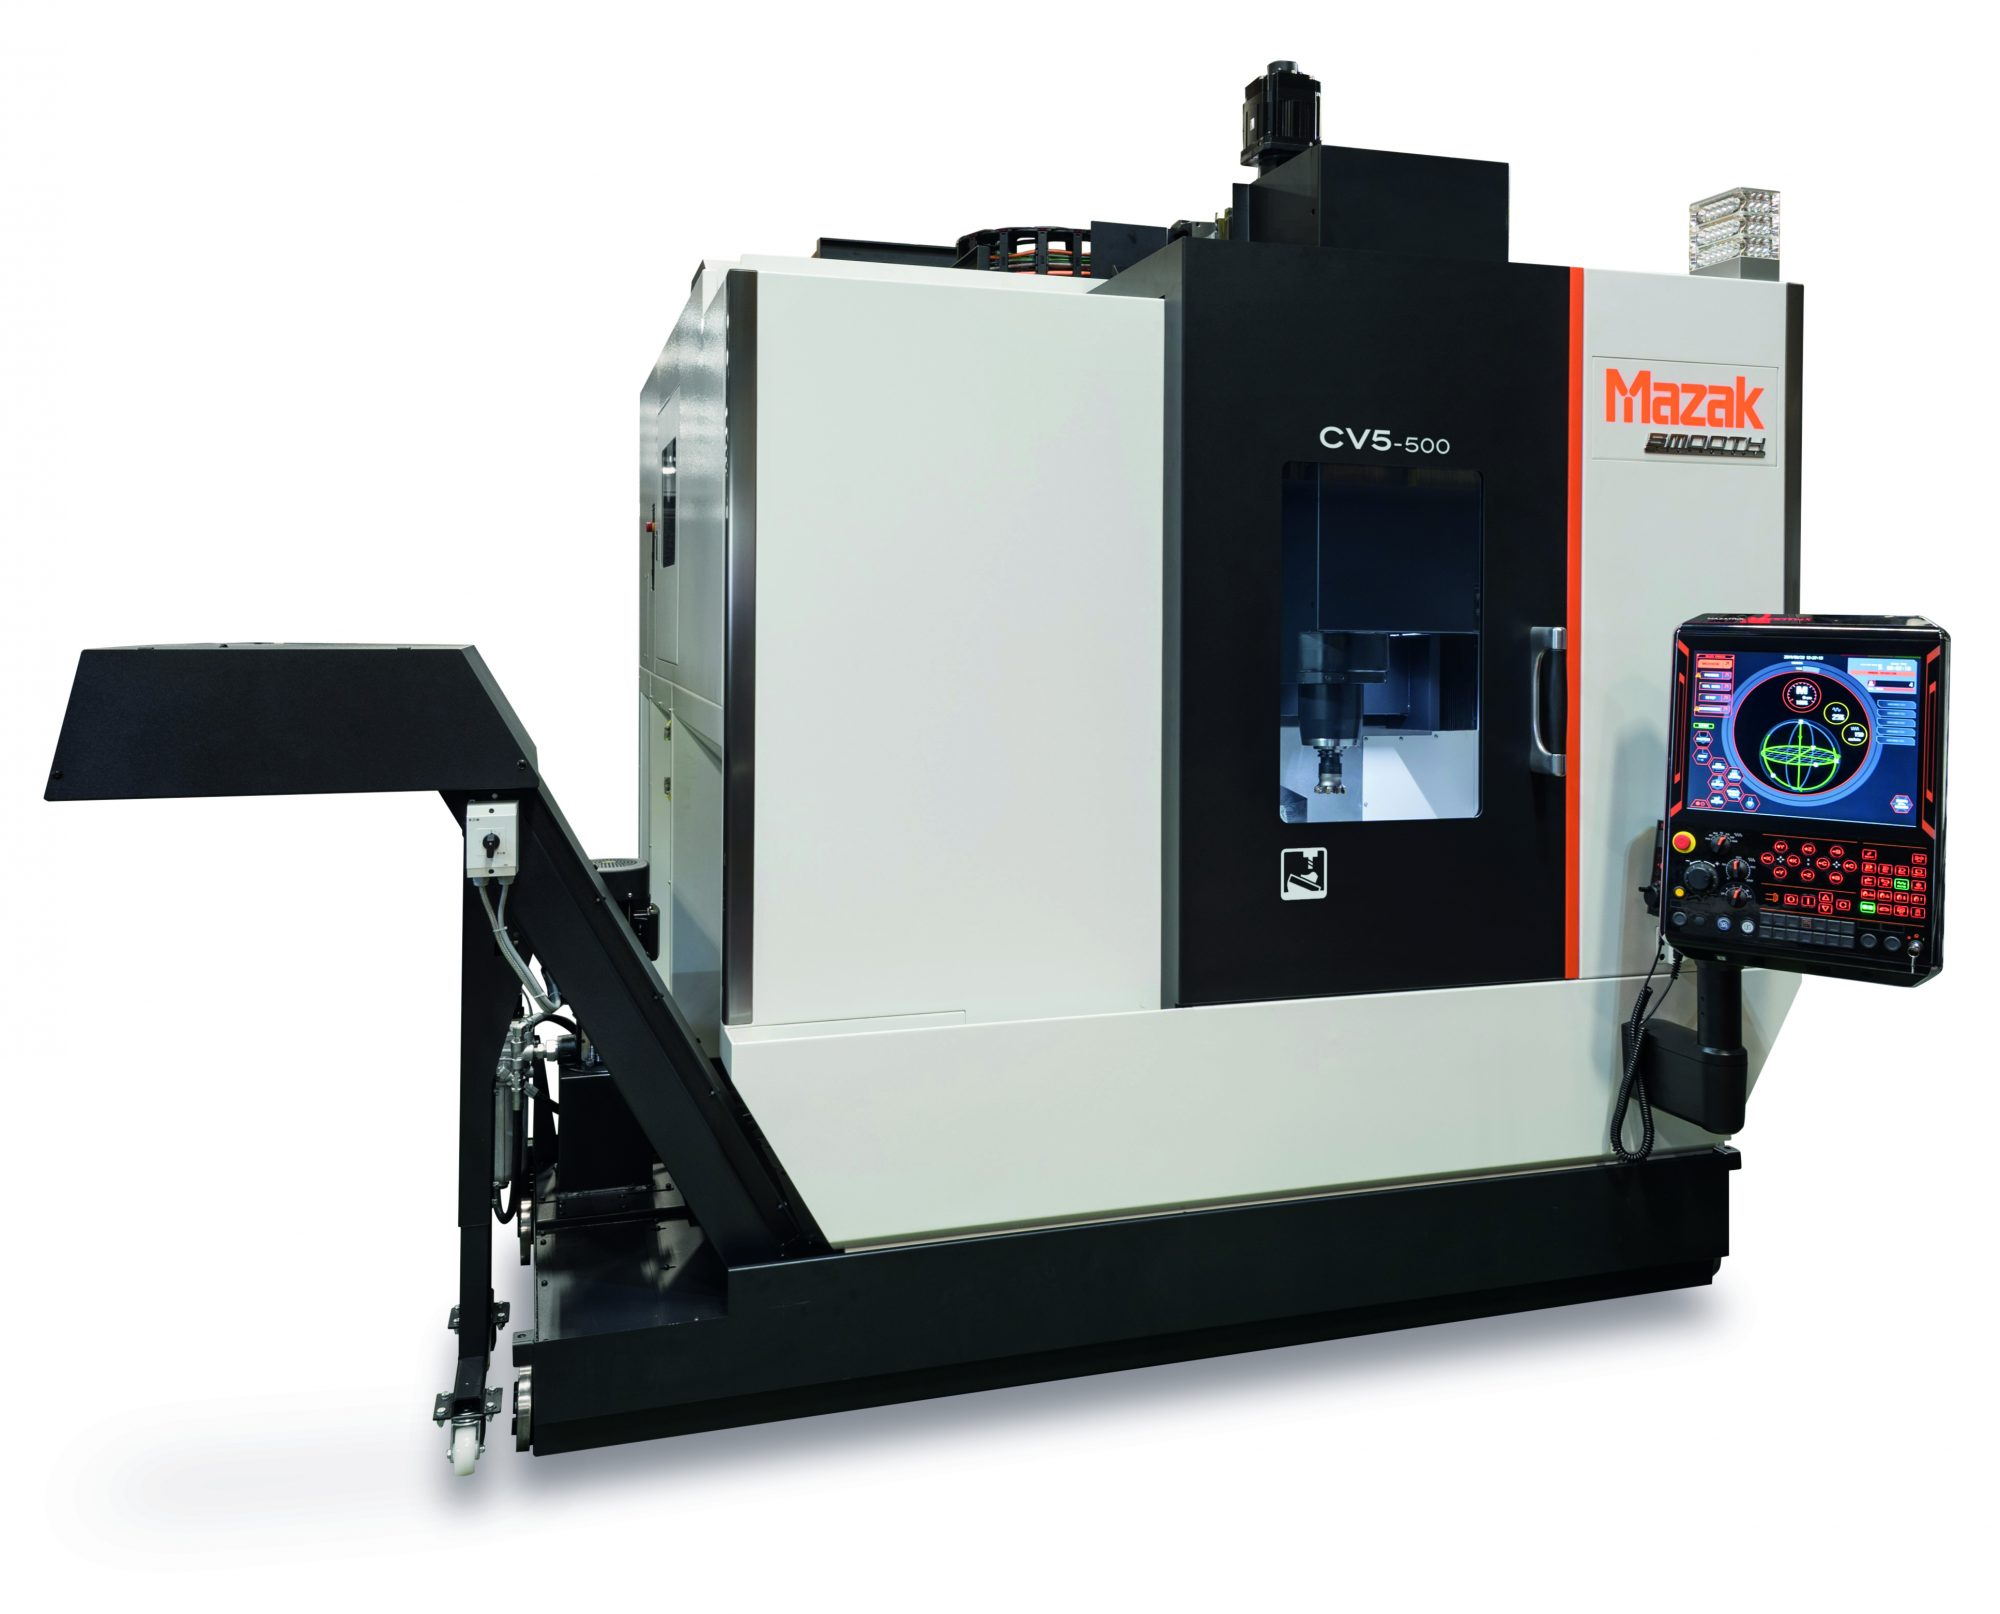 PP C&A celebrates 30,000 'control systems' milestone with Mazak UK » CV5 500 » PP Control & Automation